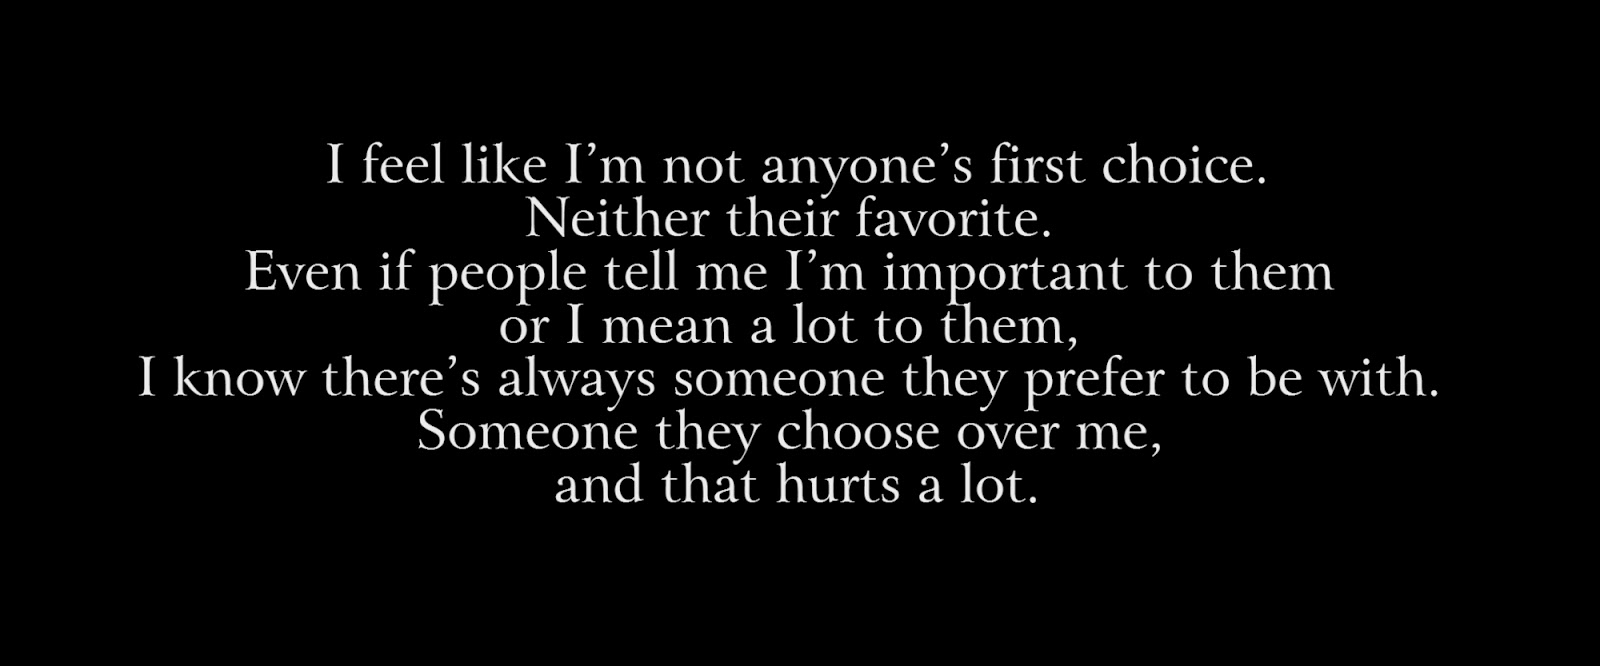 I feel like I'm not anyone's first choice. Neither their favorite. Even if people tell me I'm important to them or I mean a lot to them, I know there's always someone they prefer to be with. Someone they choose over me, and that hurts a lot.